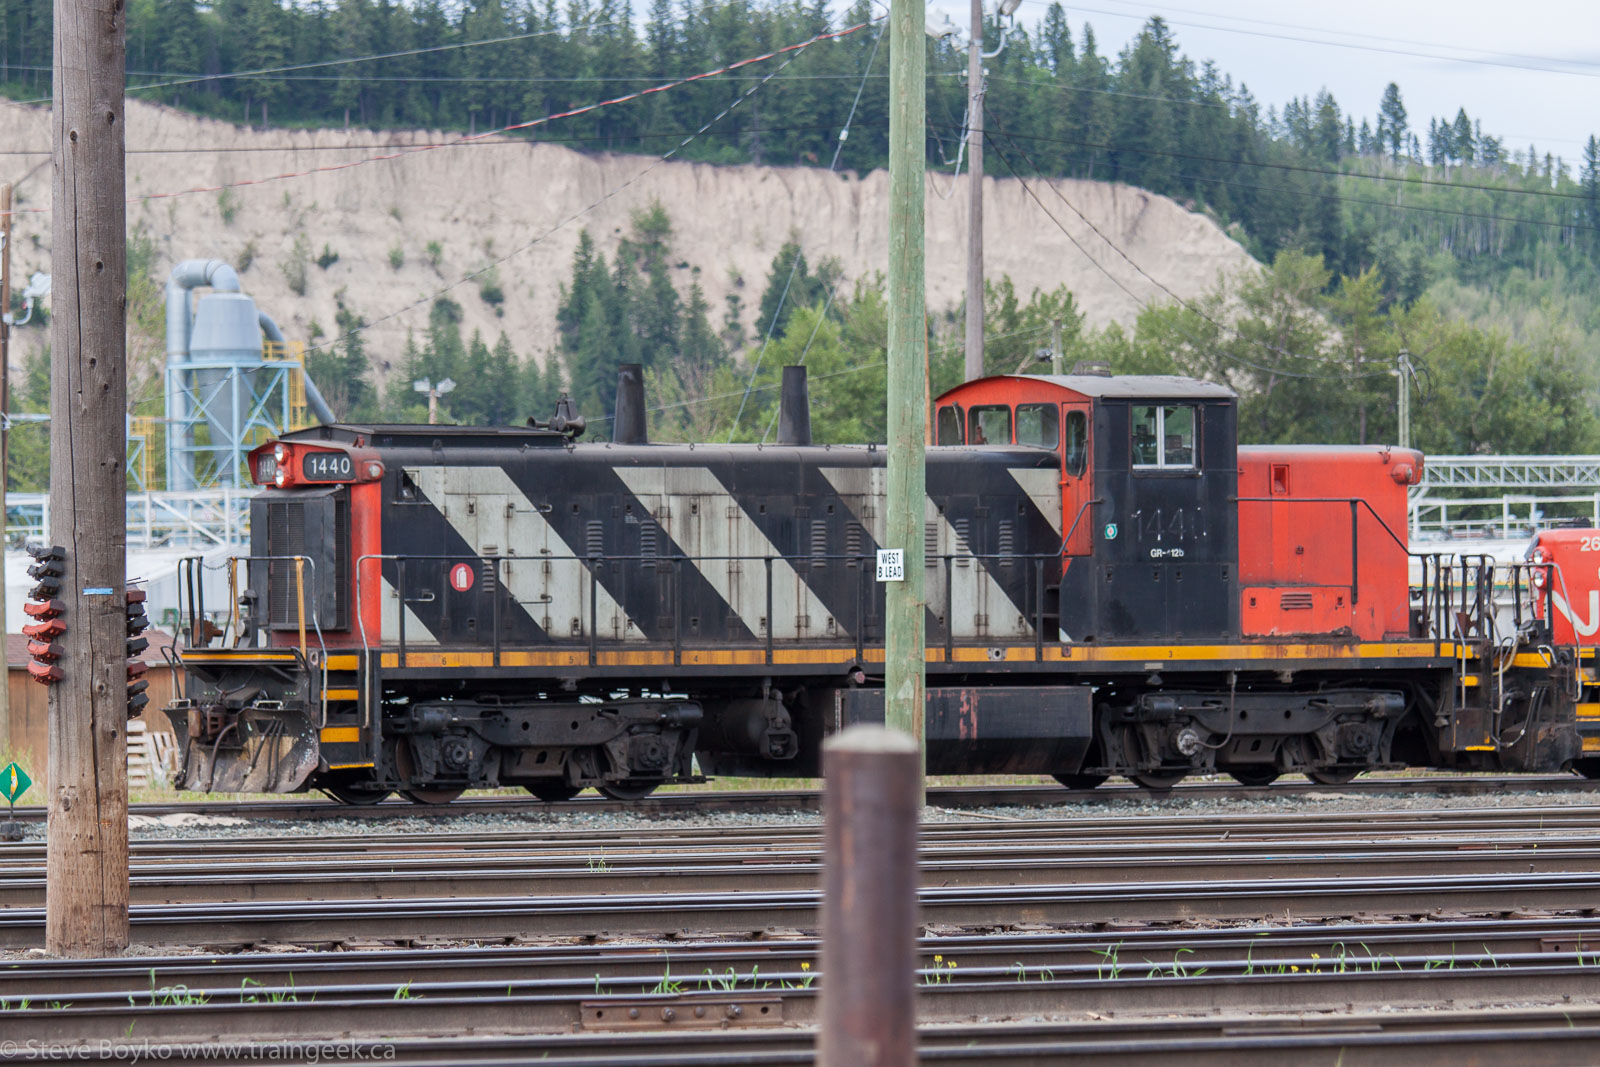 CN 1440 in Prince George, BC 2014/06/24